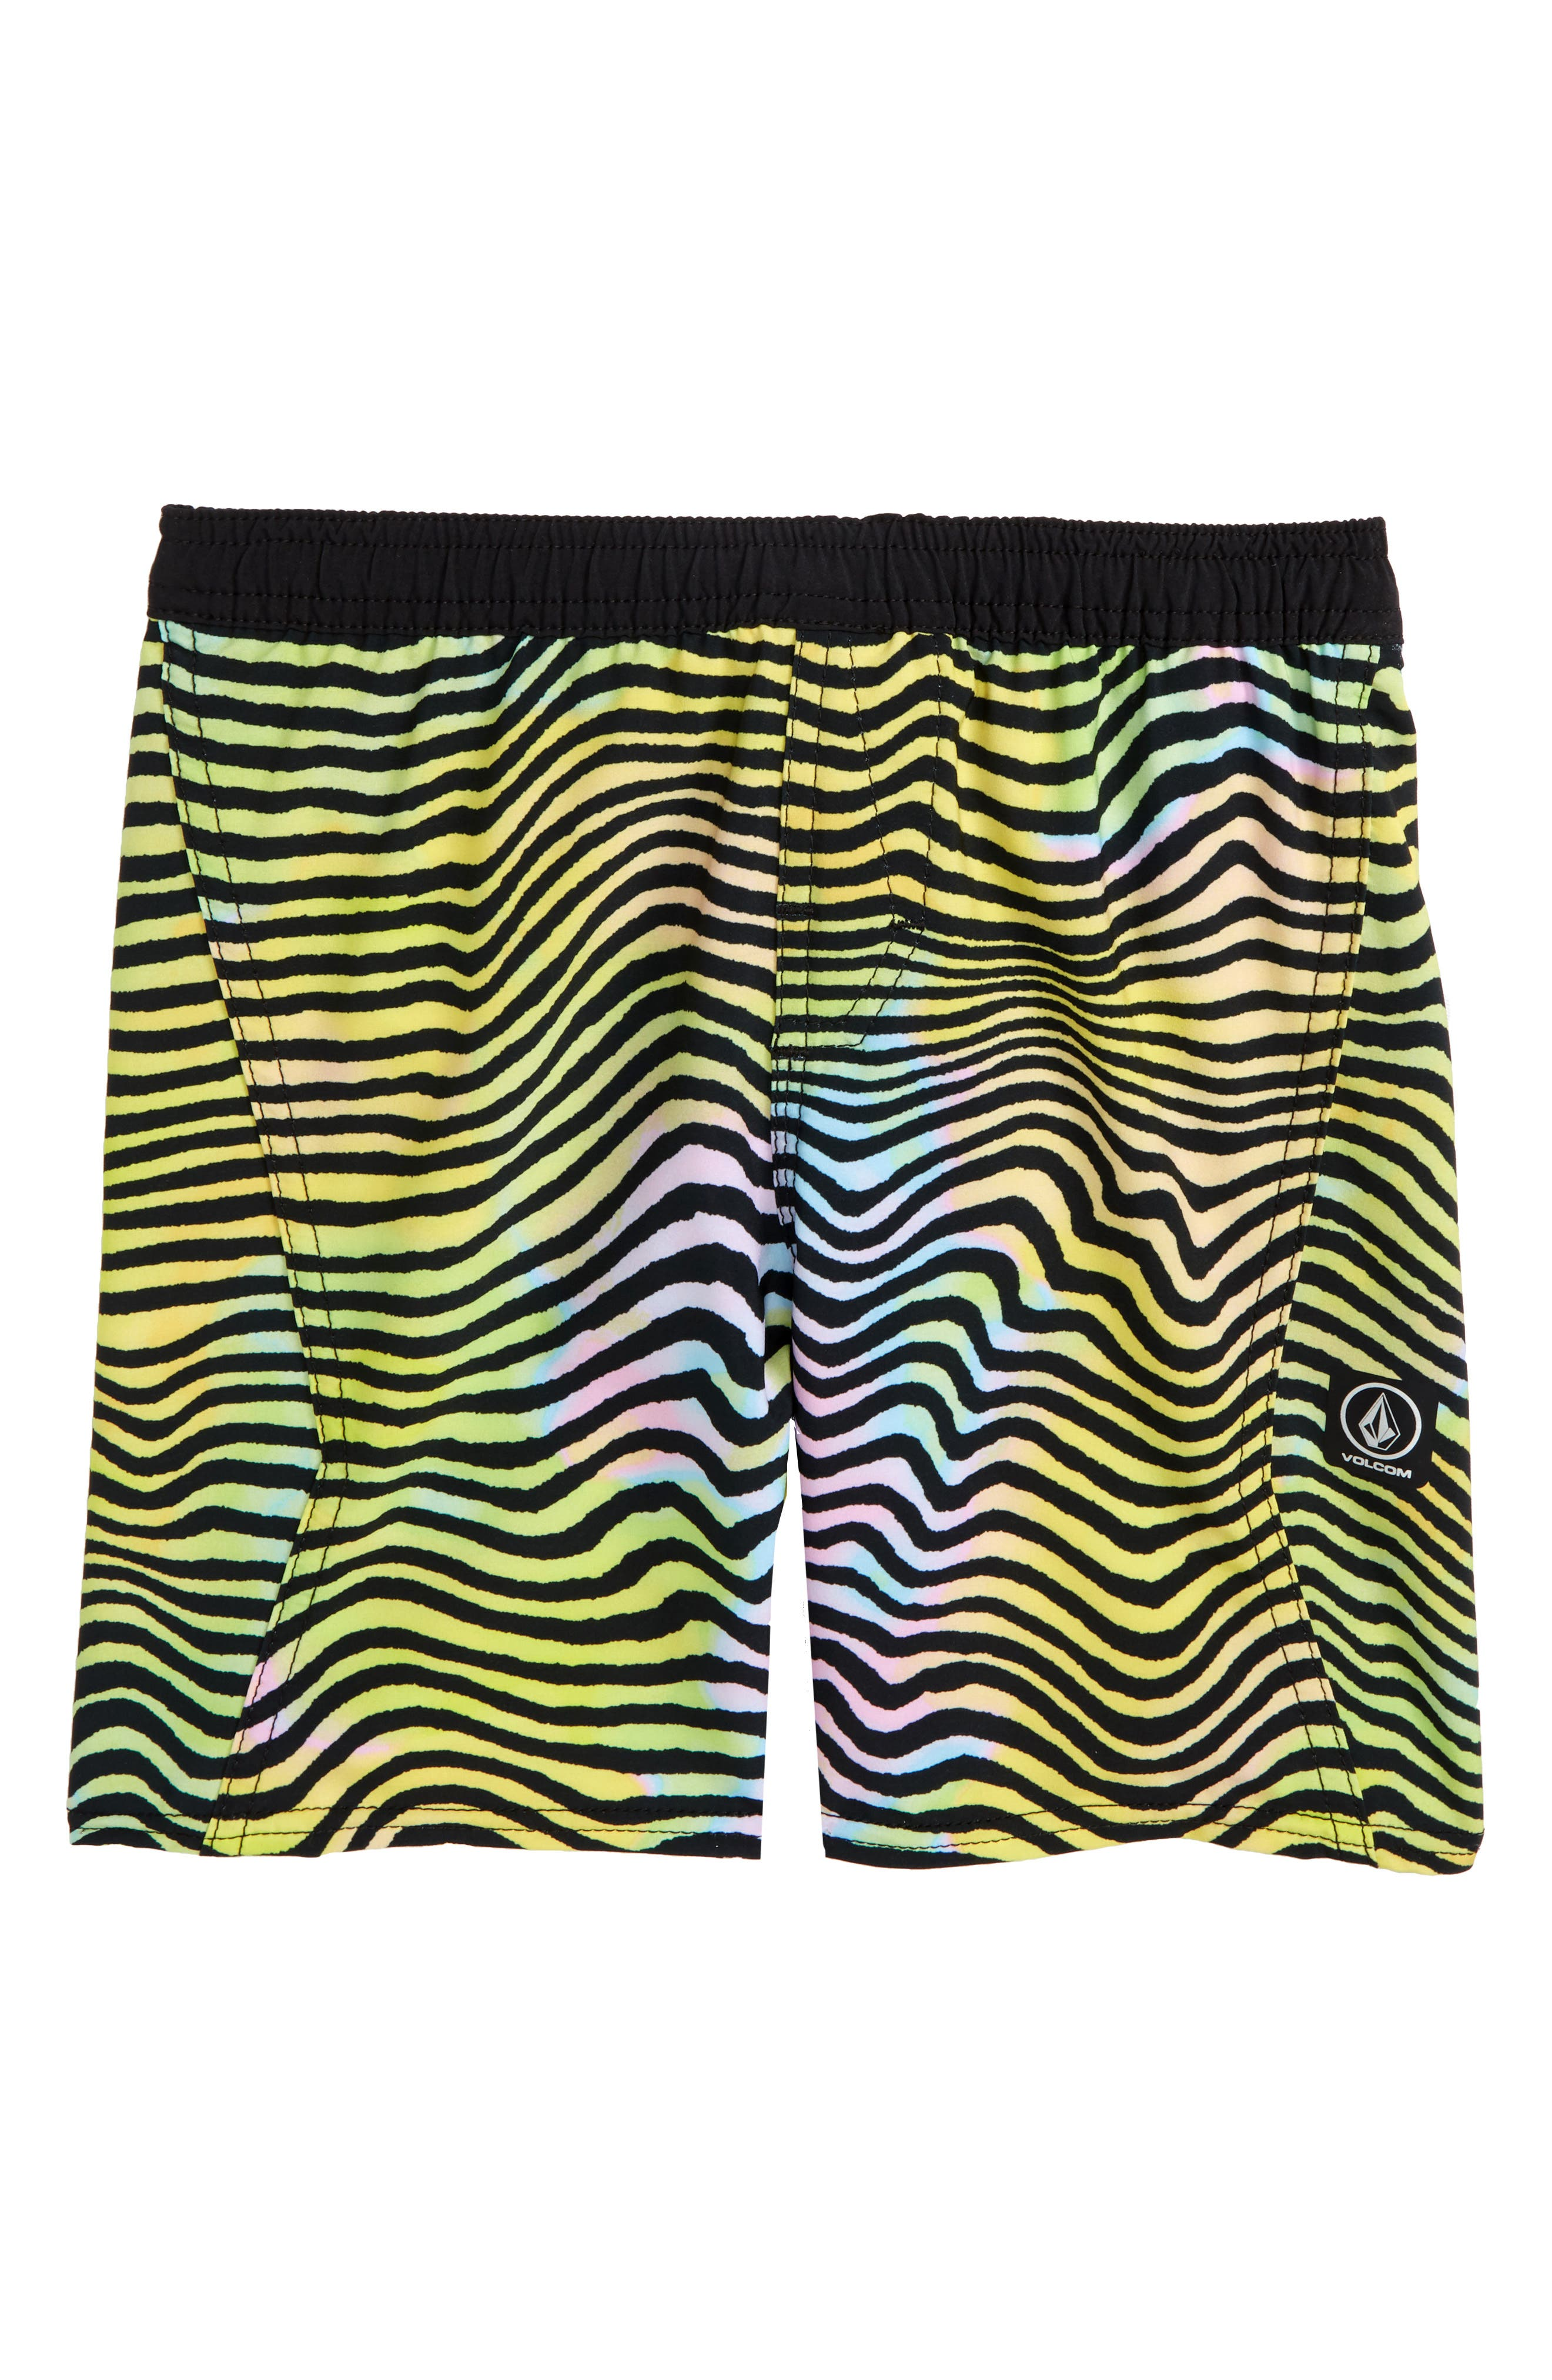 Vibes Swim Trunks,                         Main,                         color, 001